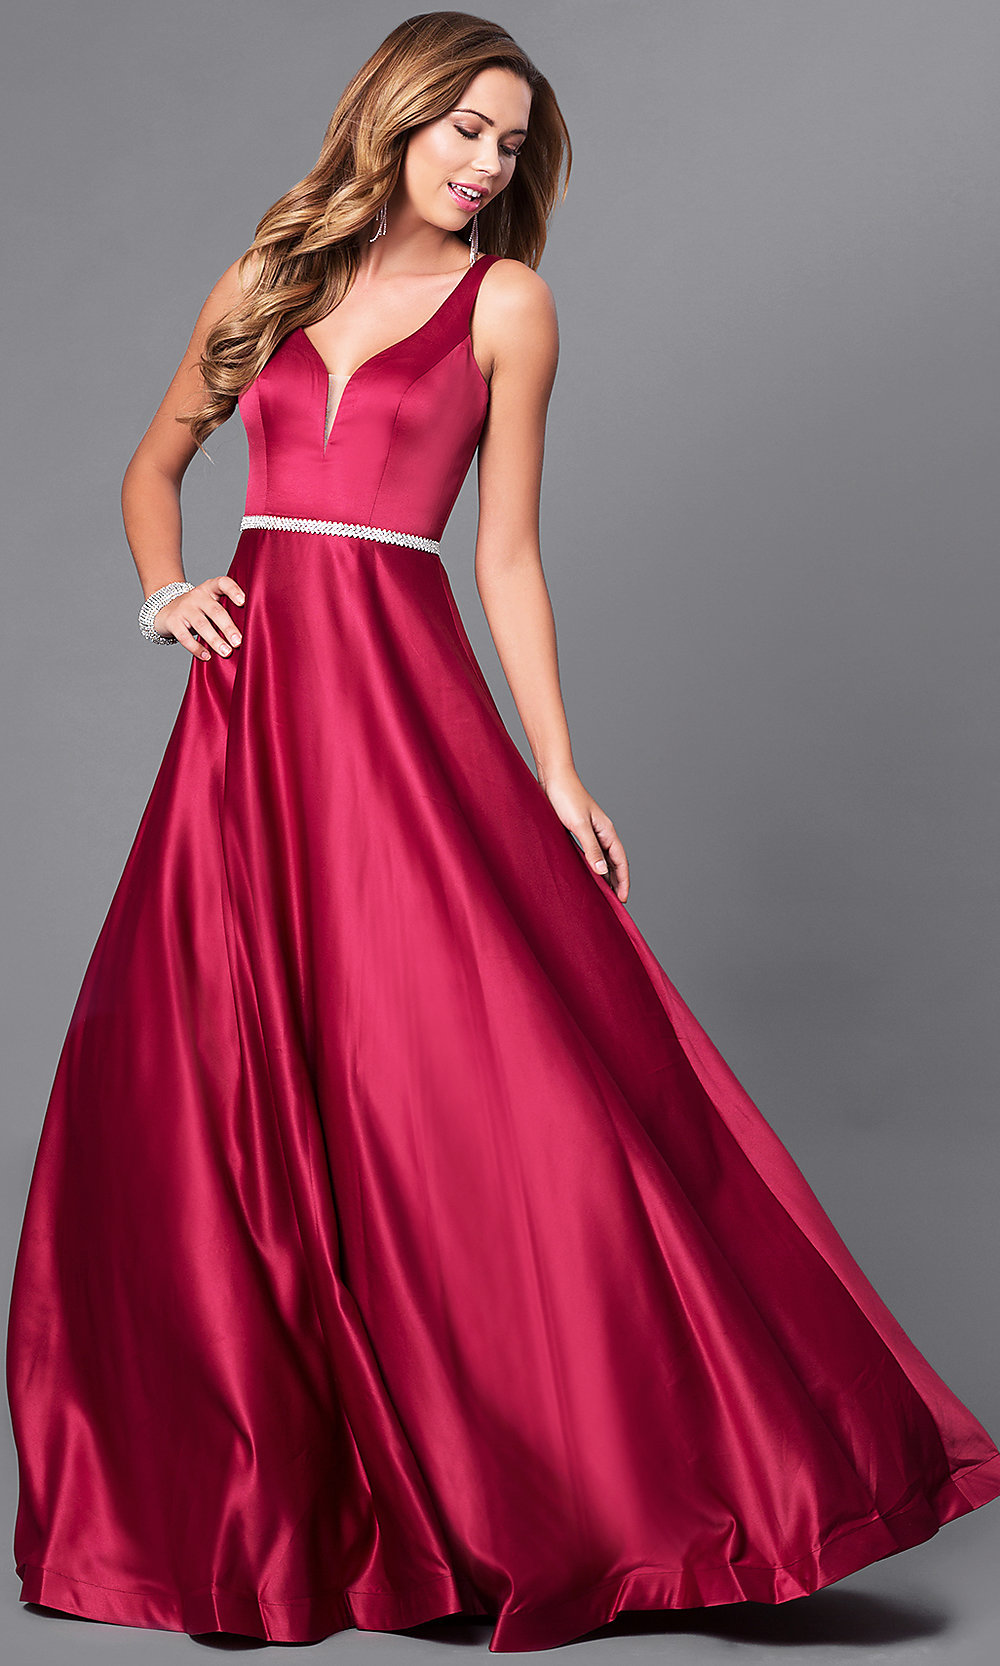 Prom Dresses San Antonio - Qi Dress